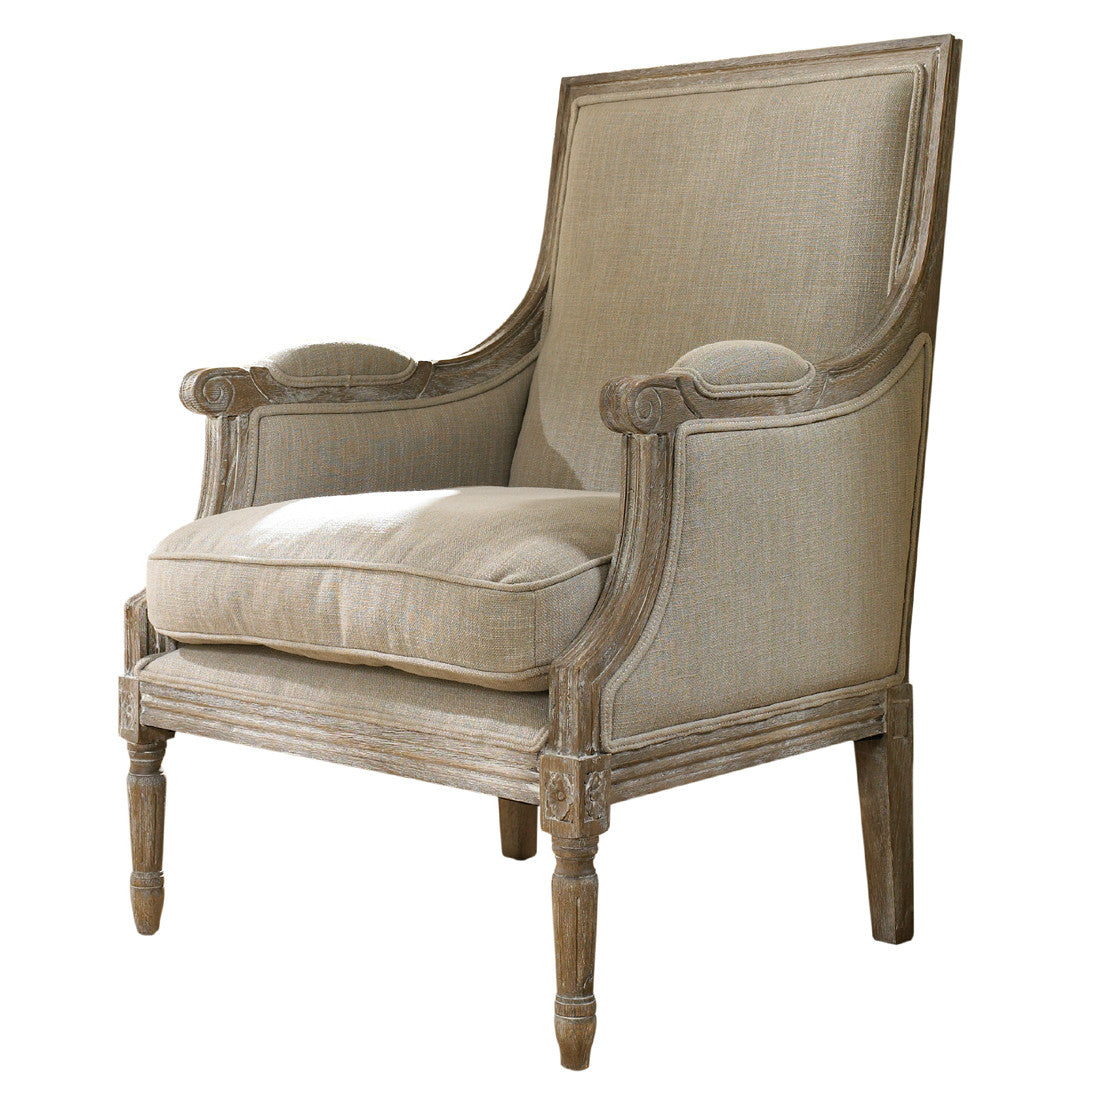 Occasional Chair - Carolina Beach Lounge Chair